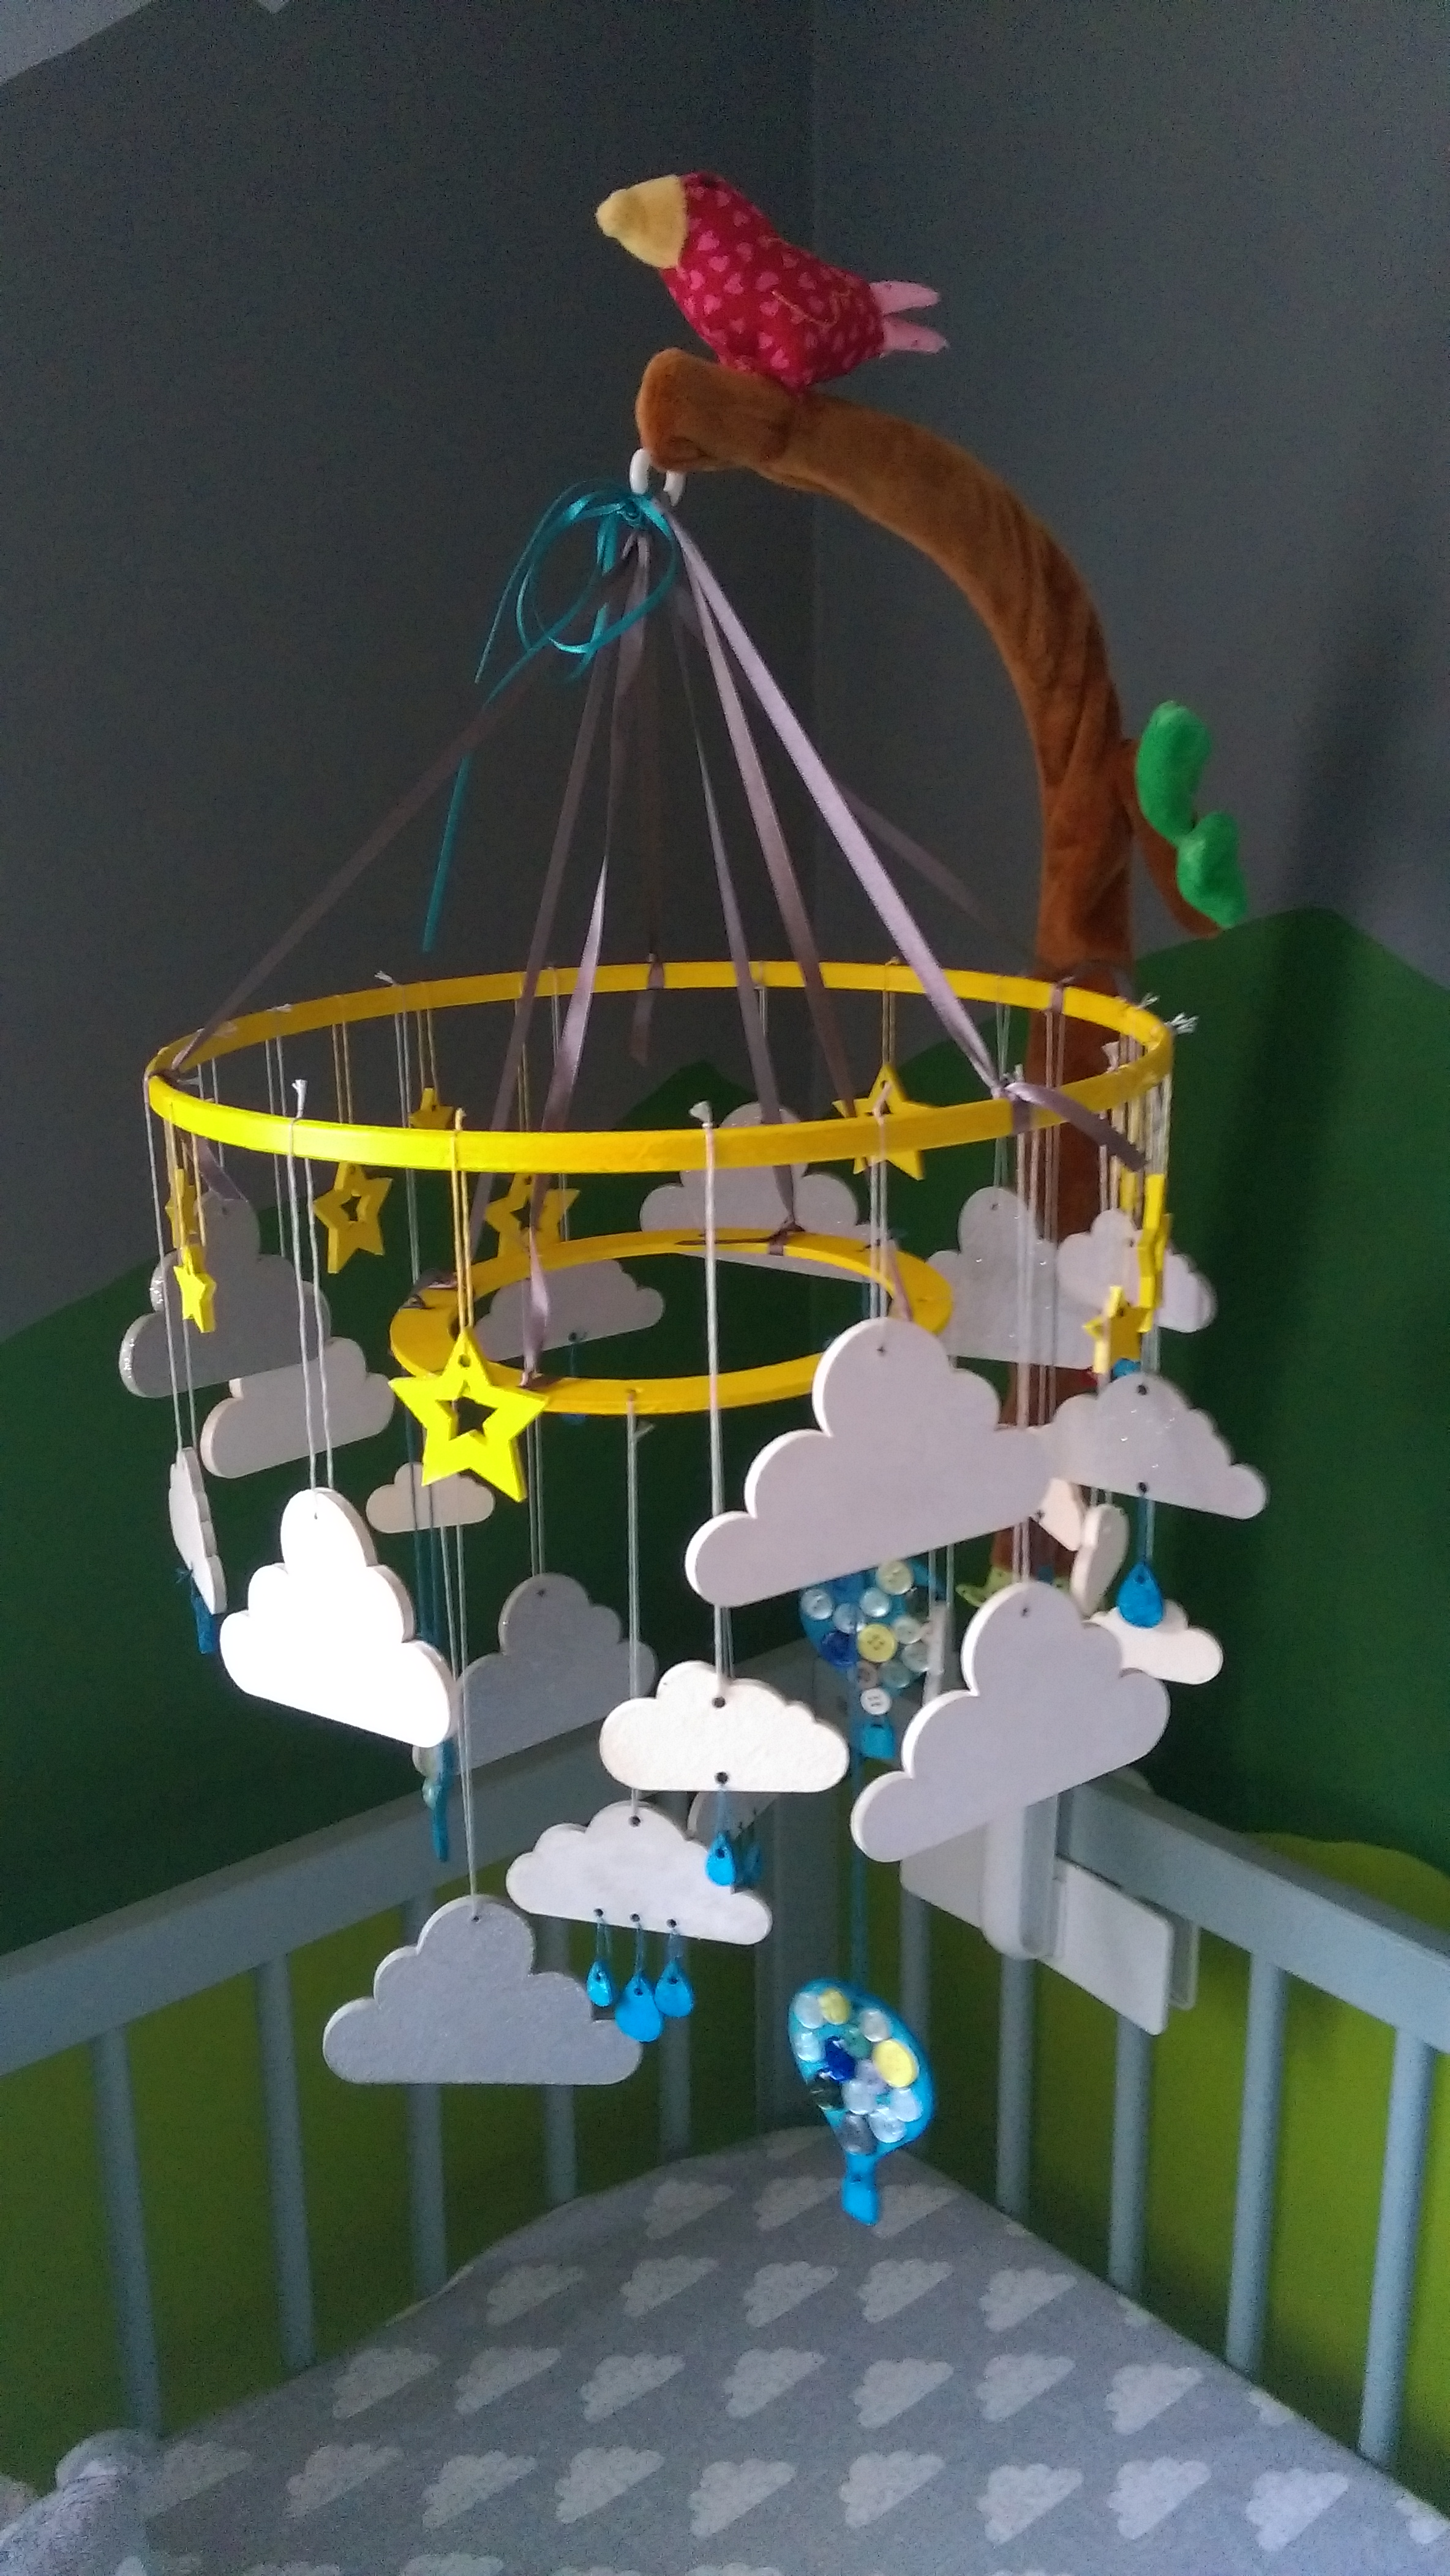 The Cloud Mobile